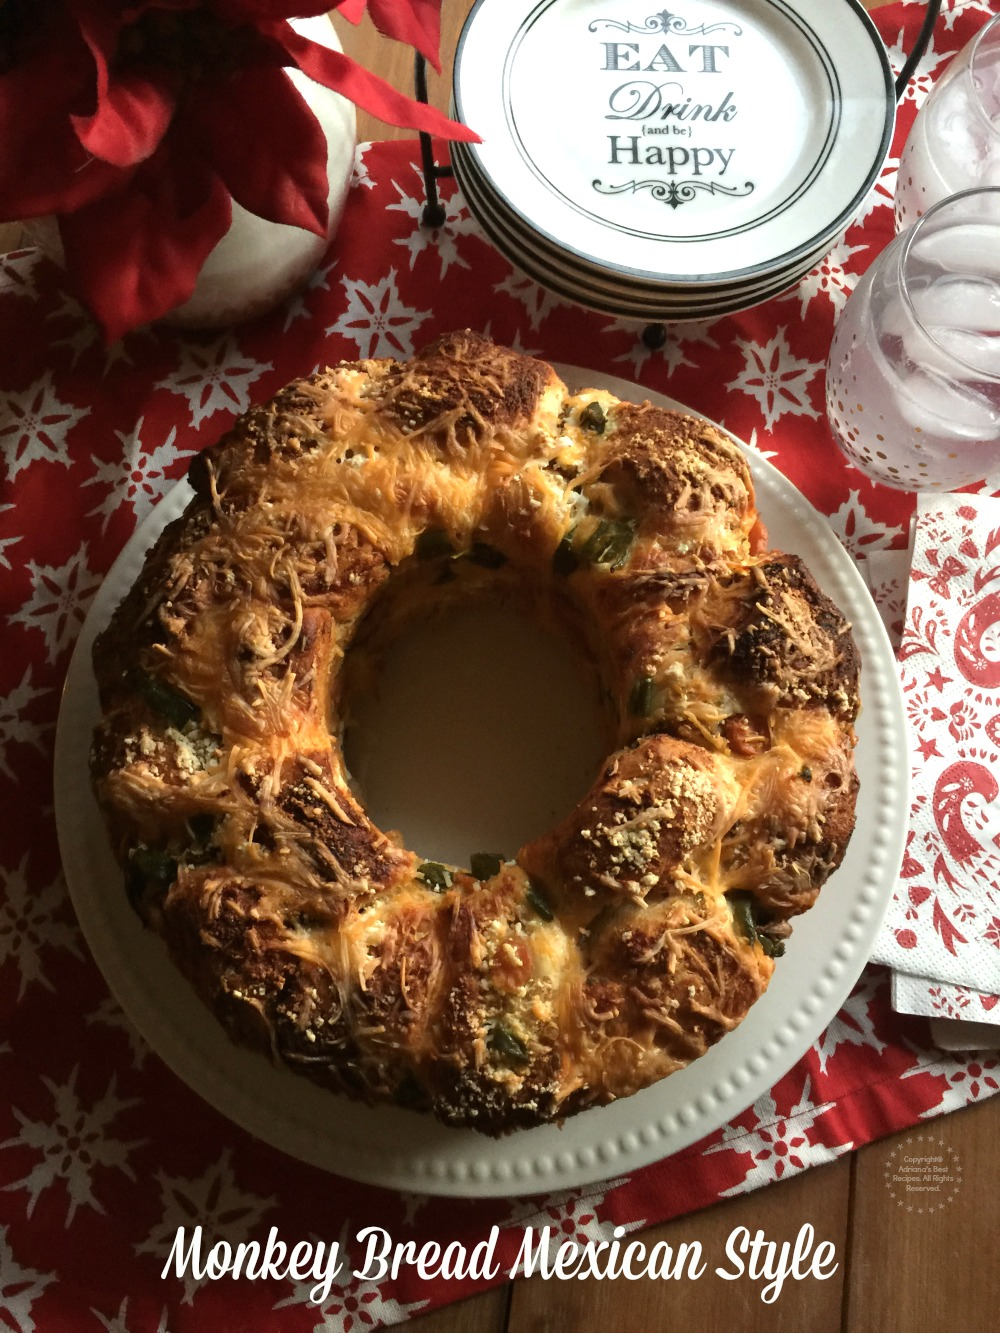 Monkey Bread Mexican Style to eat and be happy this holiday season